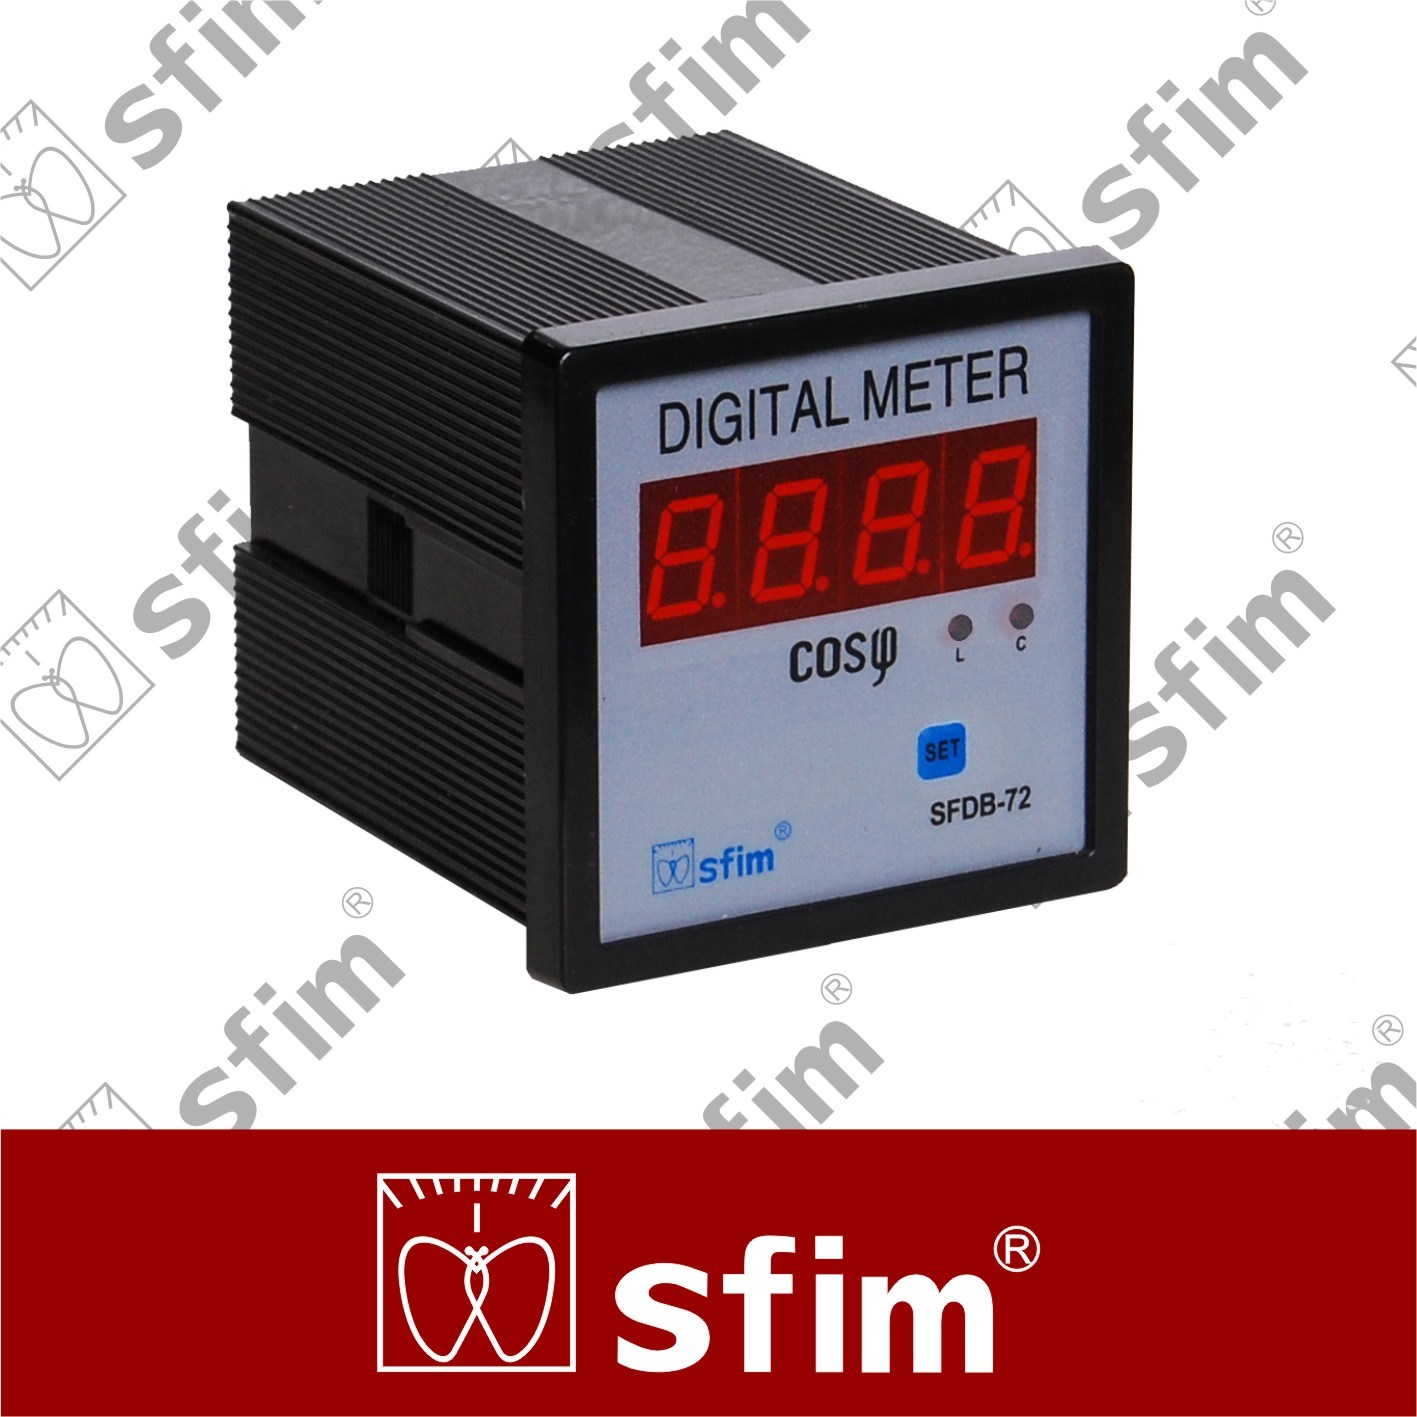 Power Factor Meter Analog : China sfd series digital power factor meter phase